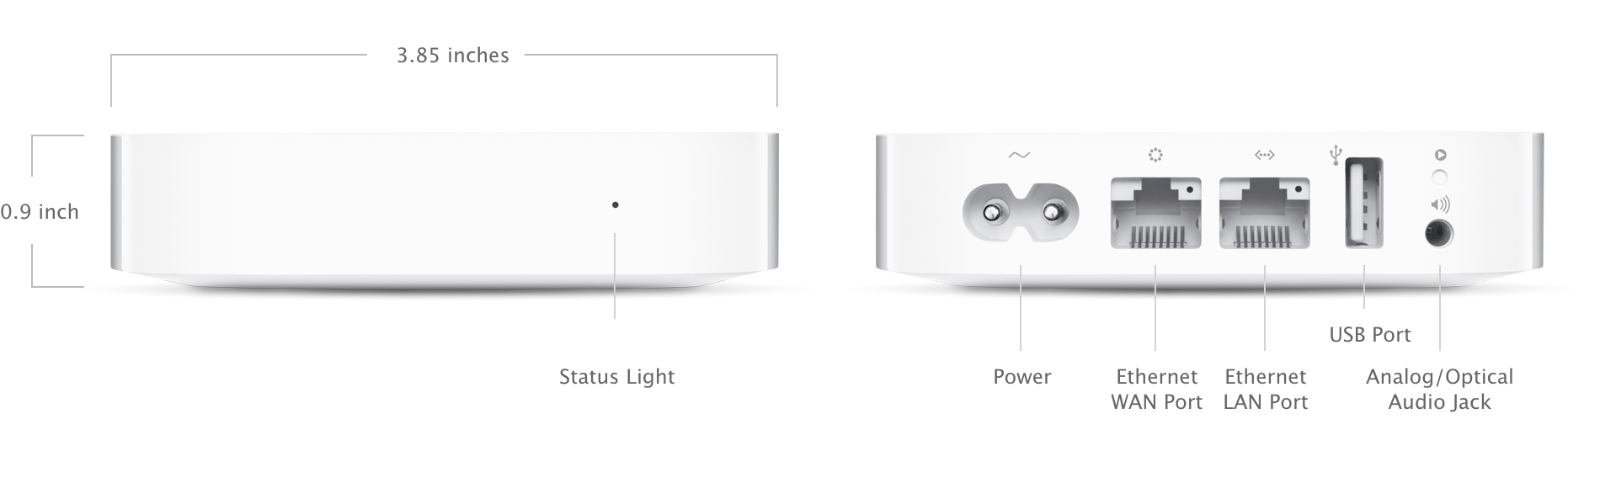 Airport Express 802 11n 2nd Generation Technical Specifications